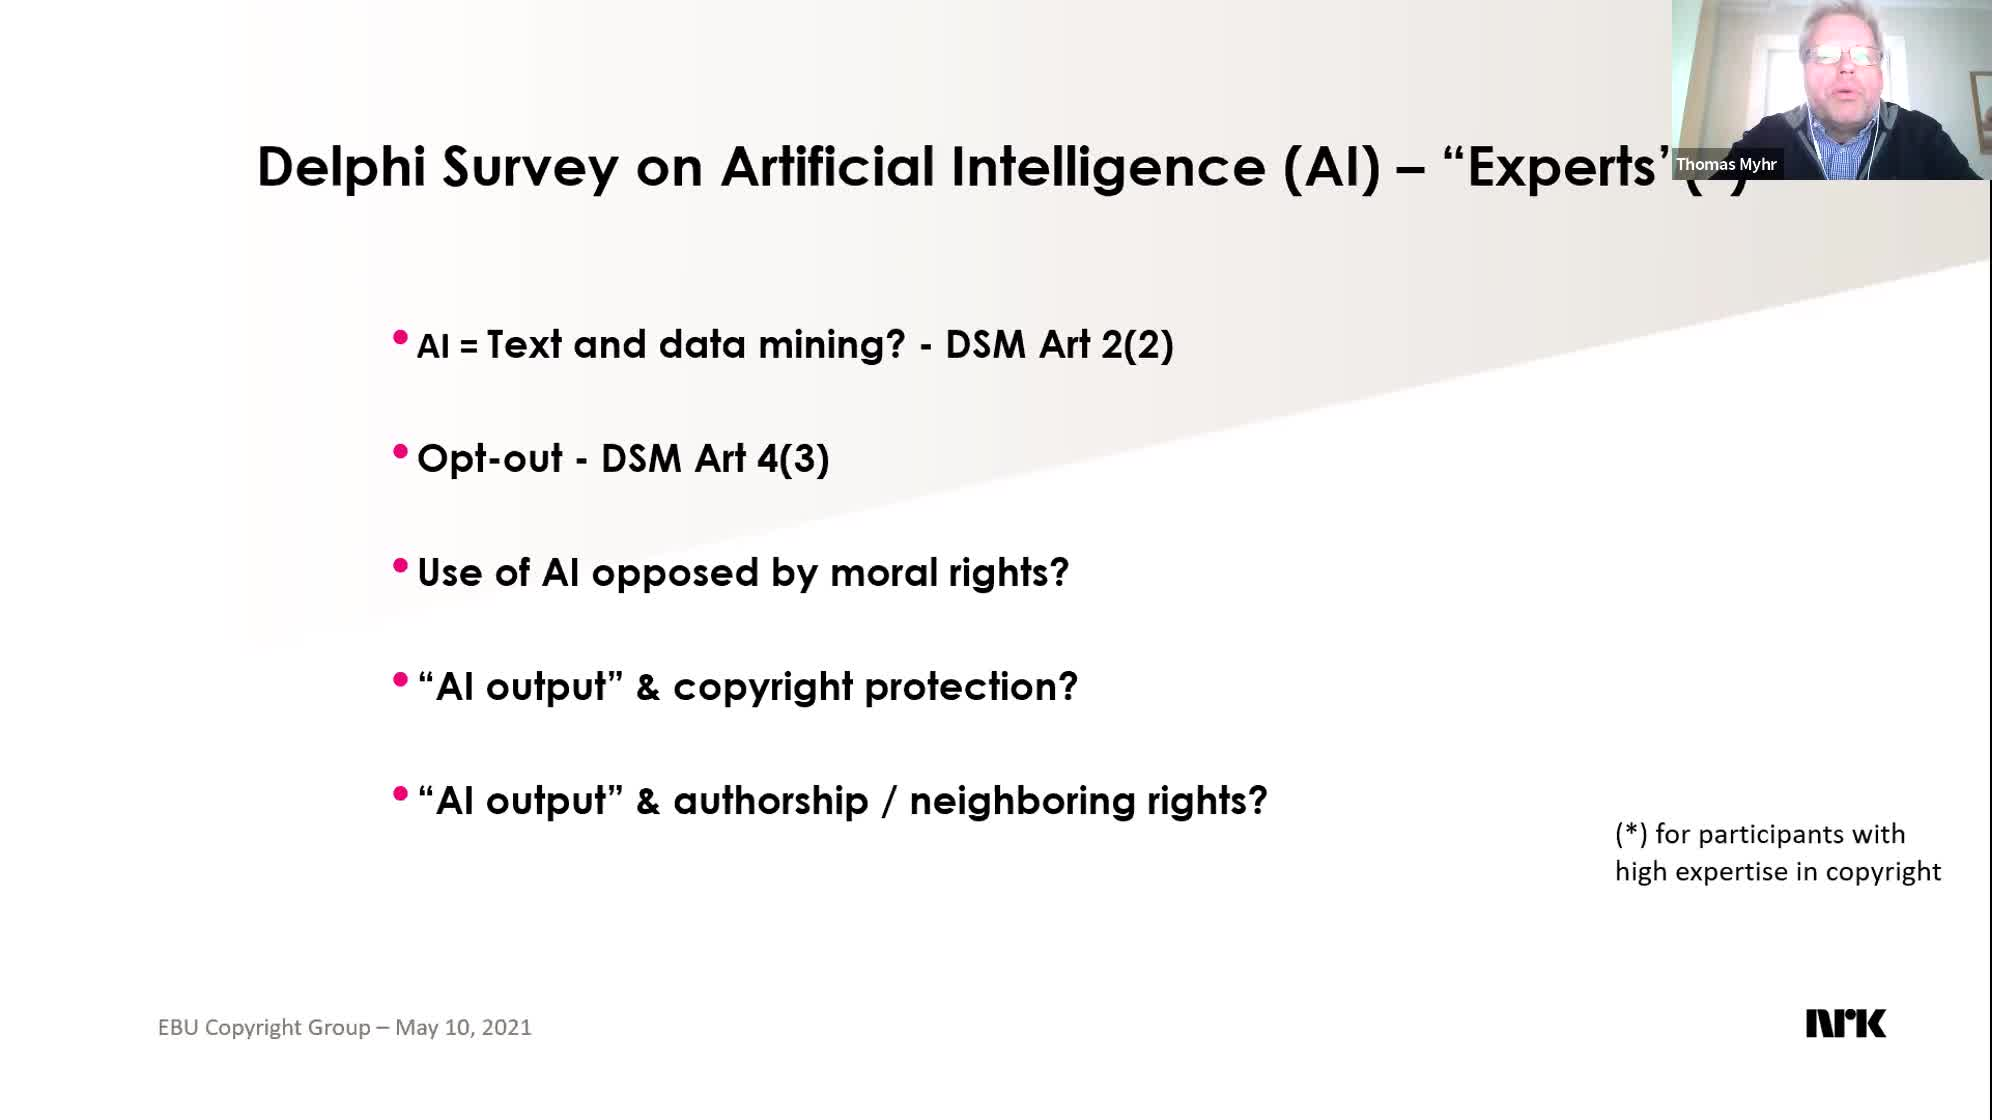 Copyright Group Meeting - Artificial Intelligence & Copyright